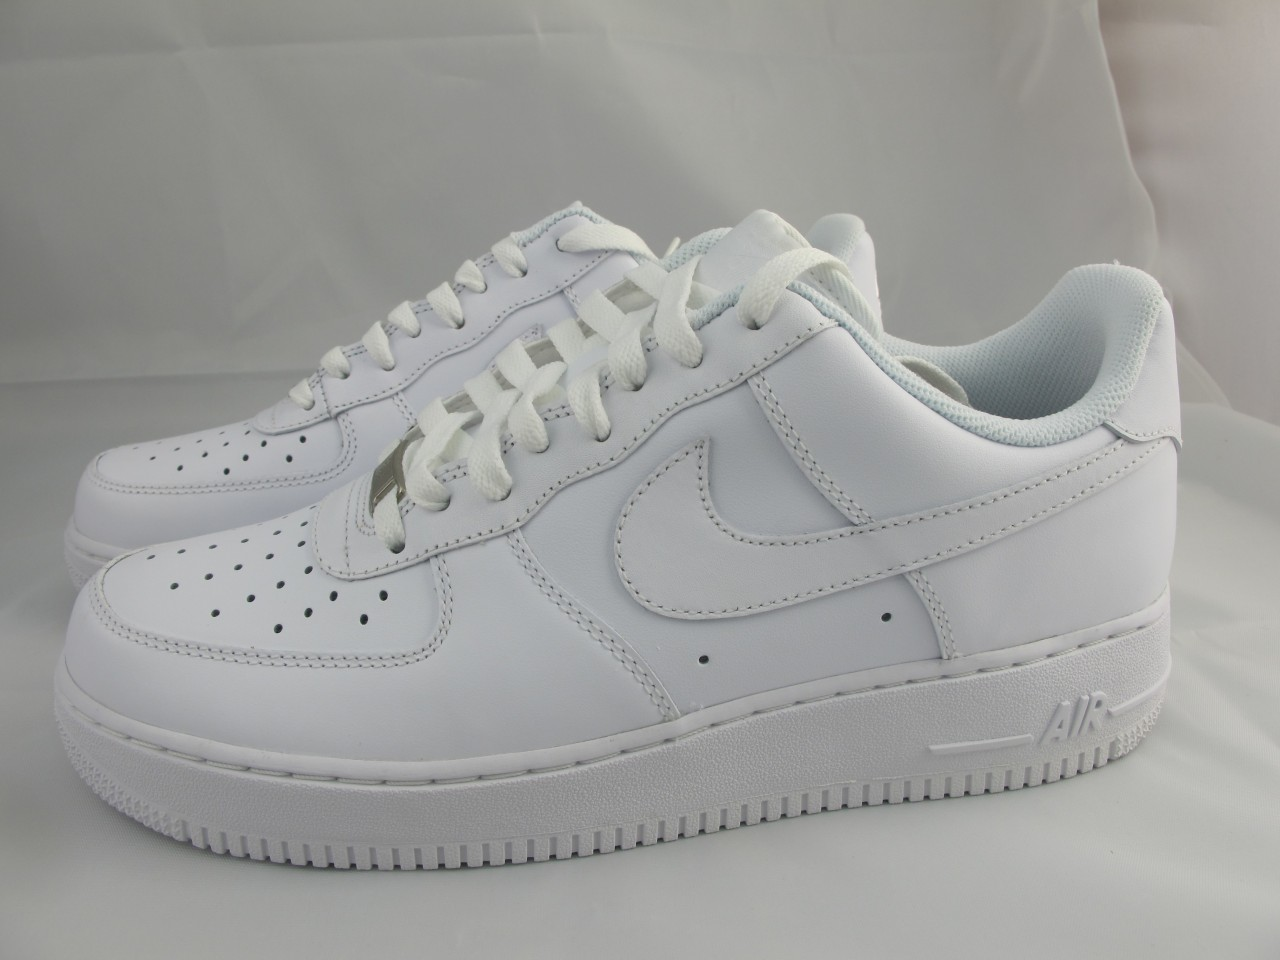 Nike Air Force Faible Vente Ebay Blanc